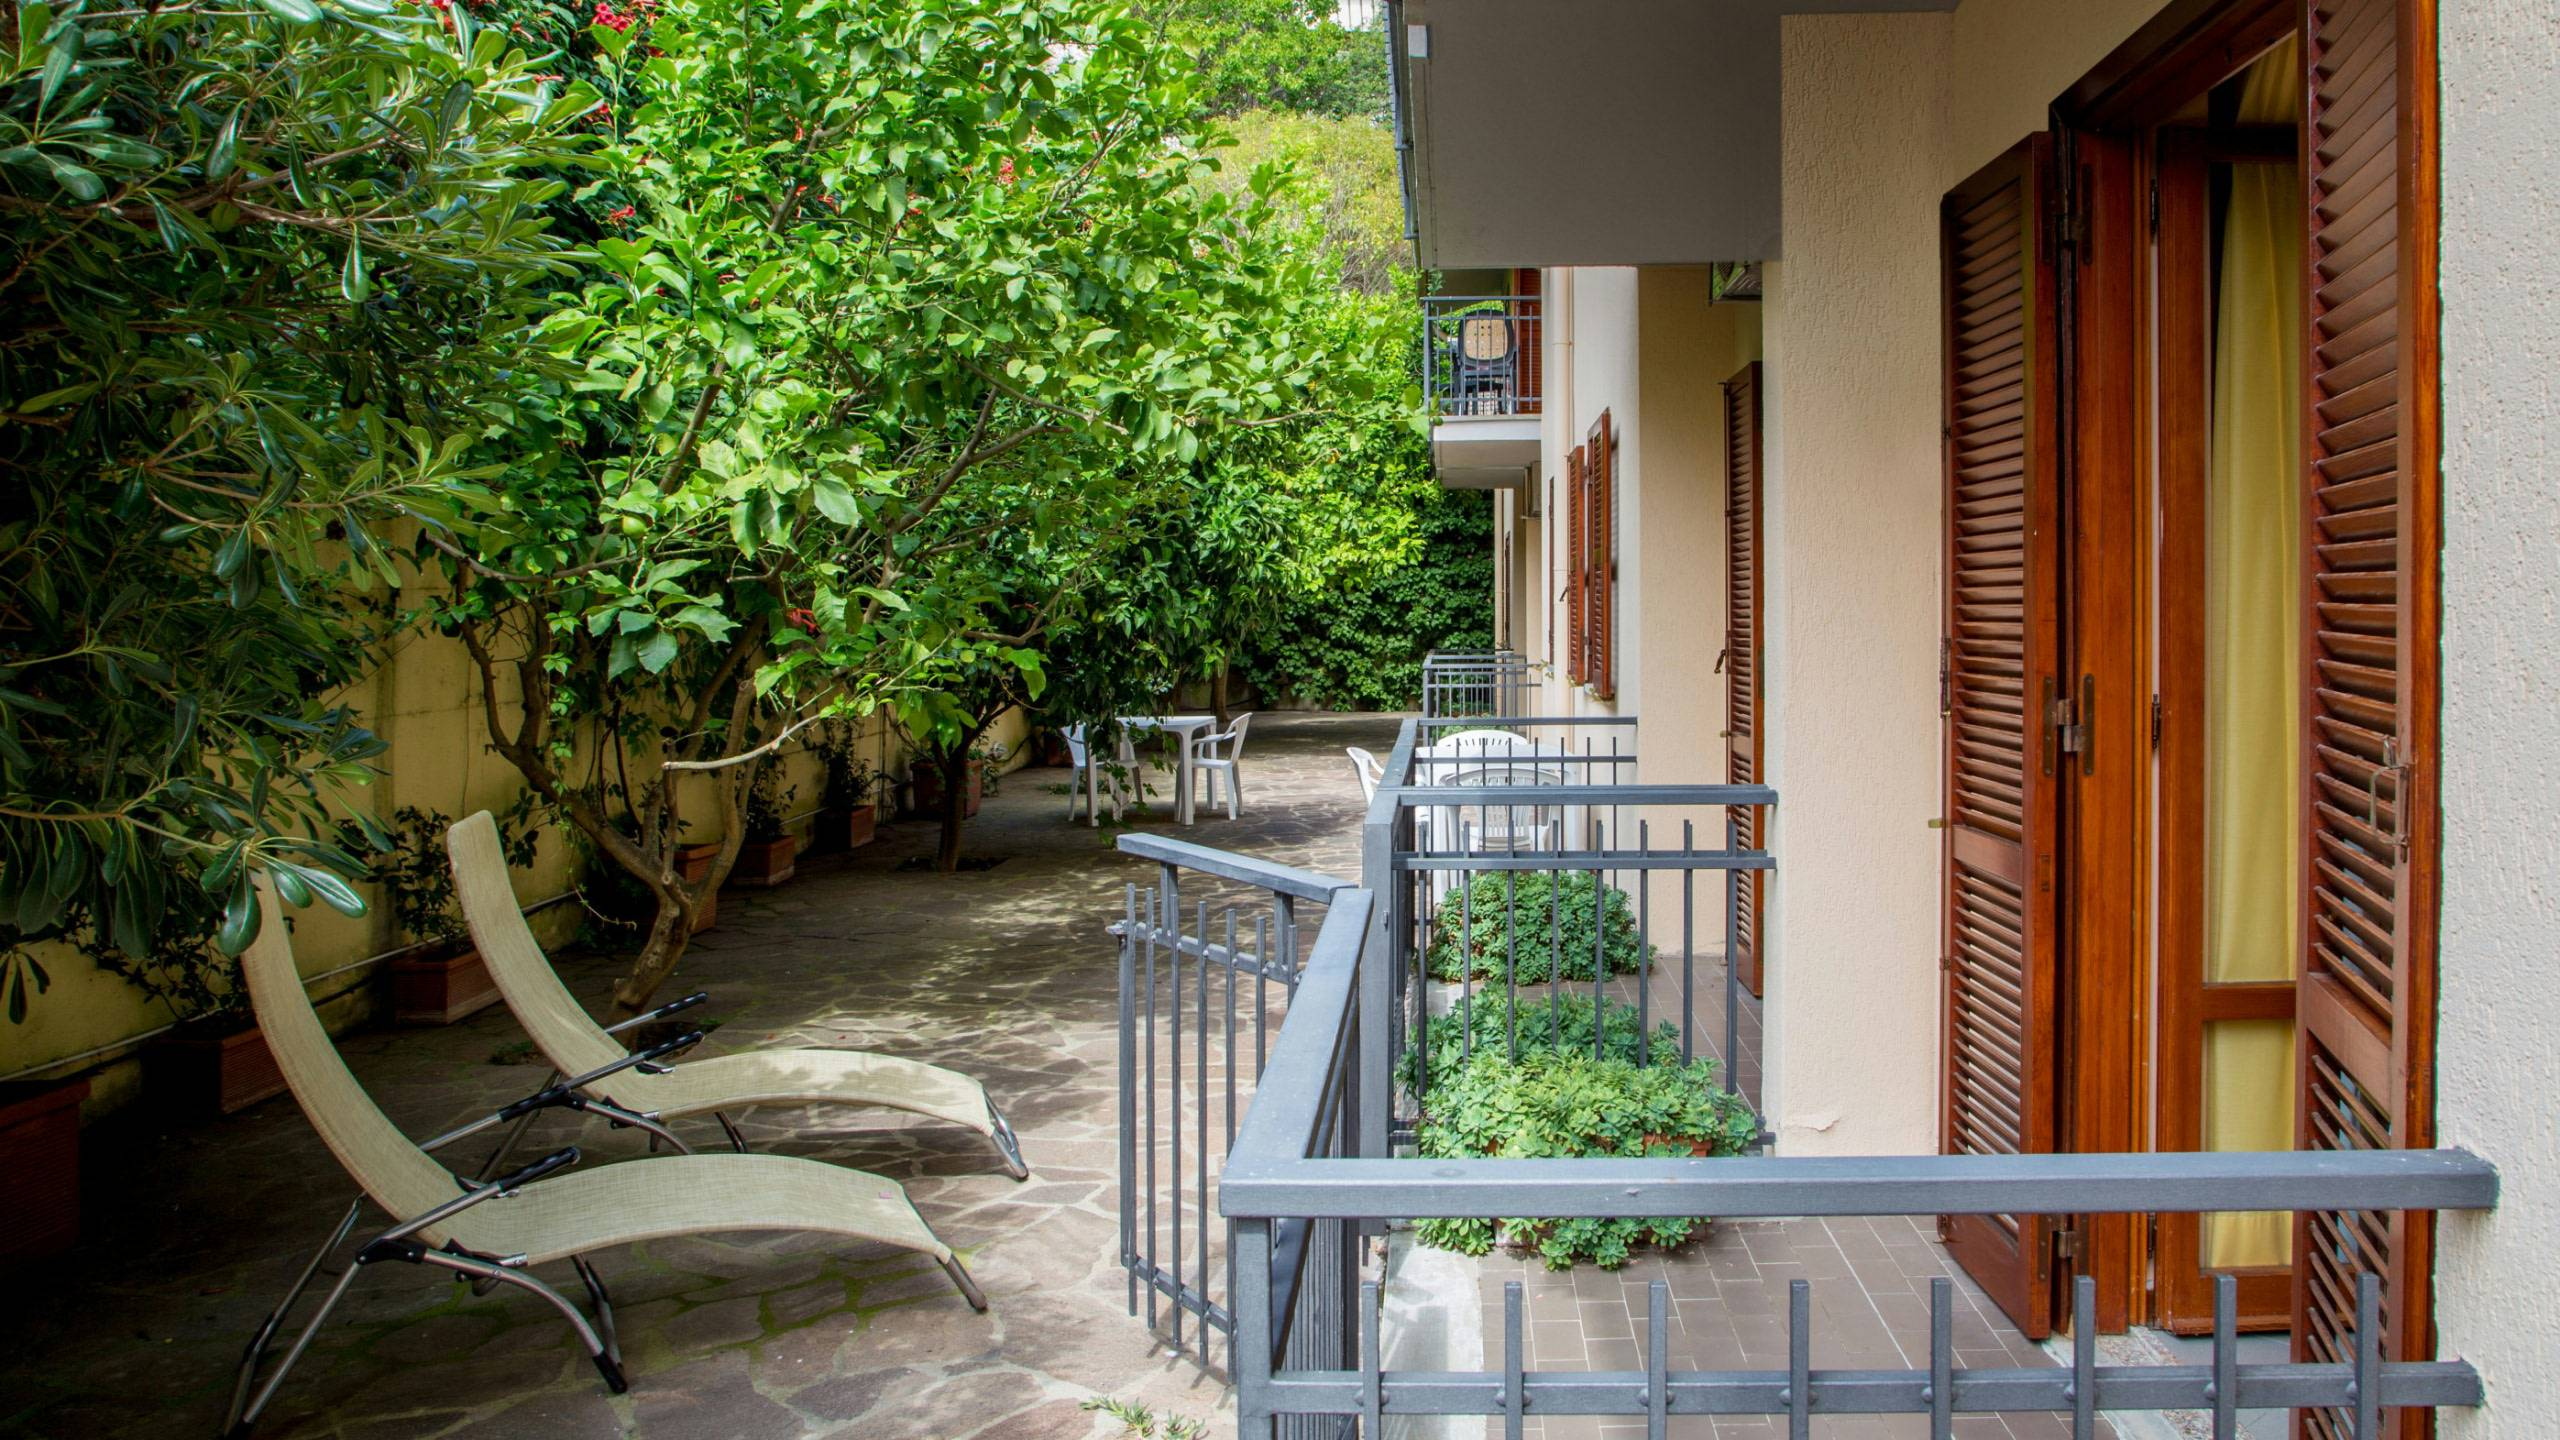 Hotel-Residence-Valle-del-Buttero-Capalbio-nature-145